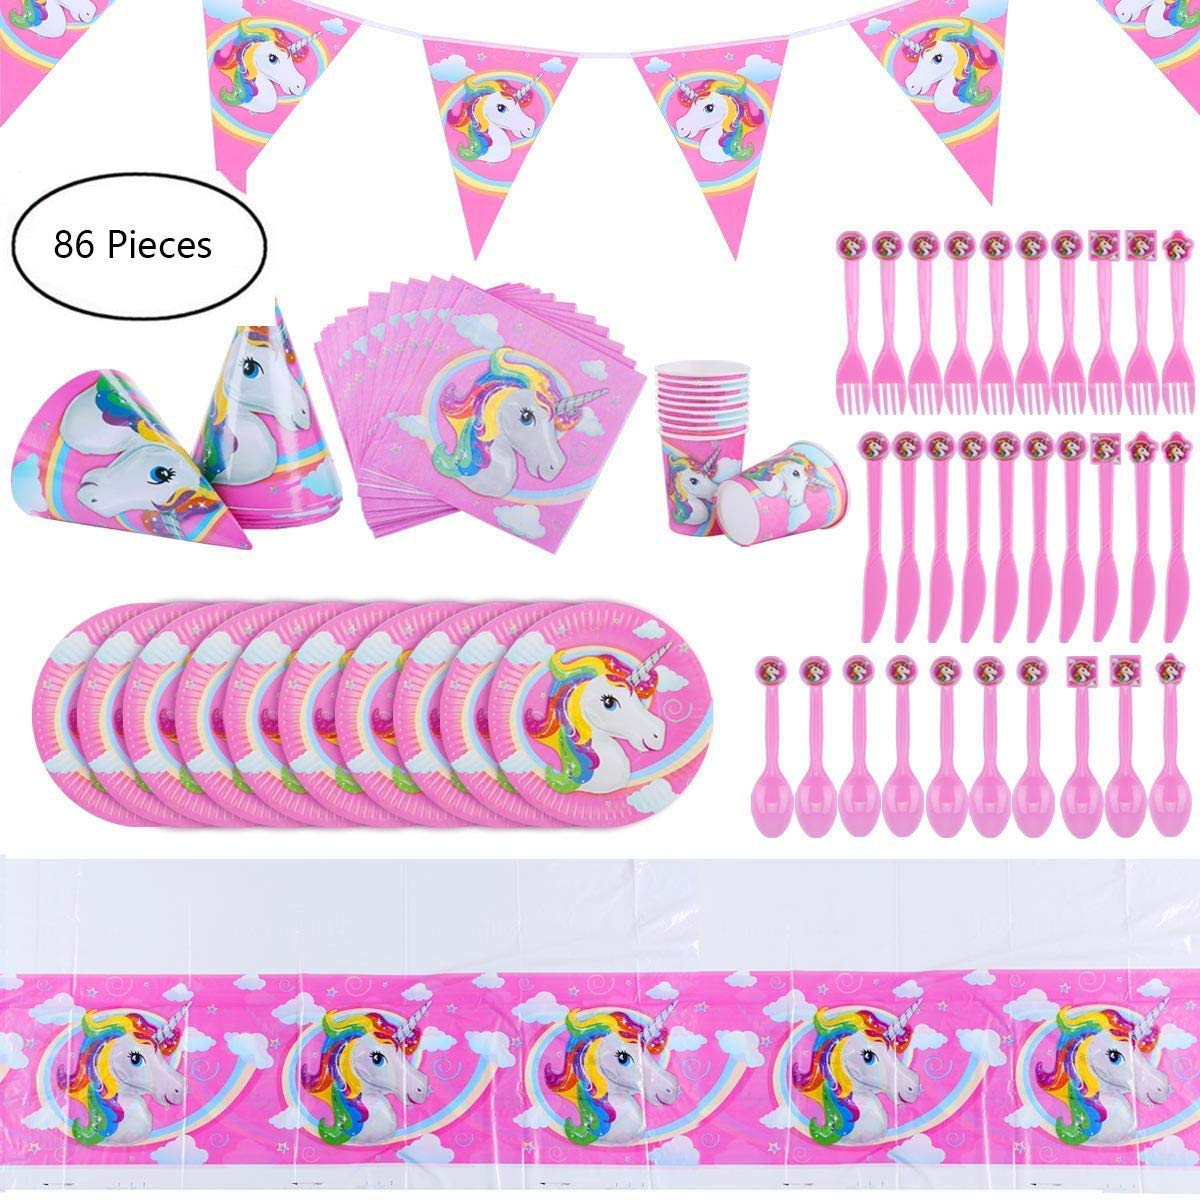 145 Pcs Unicorn Party Supplies Set Decorations Birthday Gifts for Girls Kids Birthday Banner Pink Decor Purple Party Napkin, invitation card, hat and many more (Set of 16) Dailymall